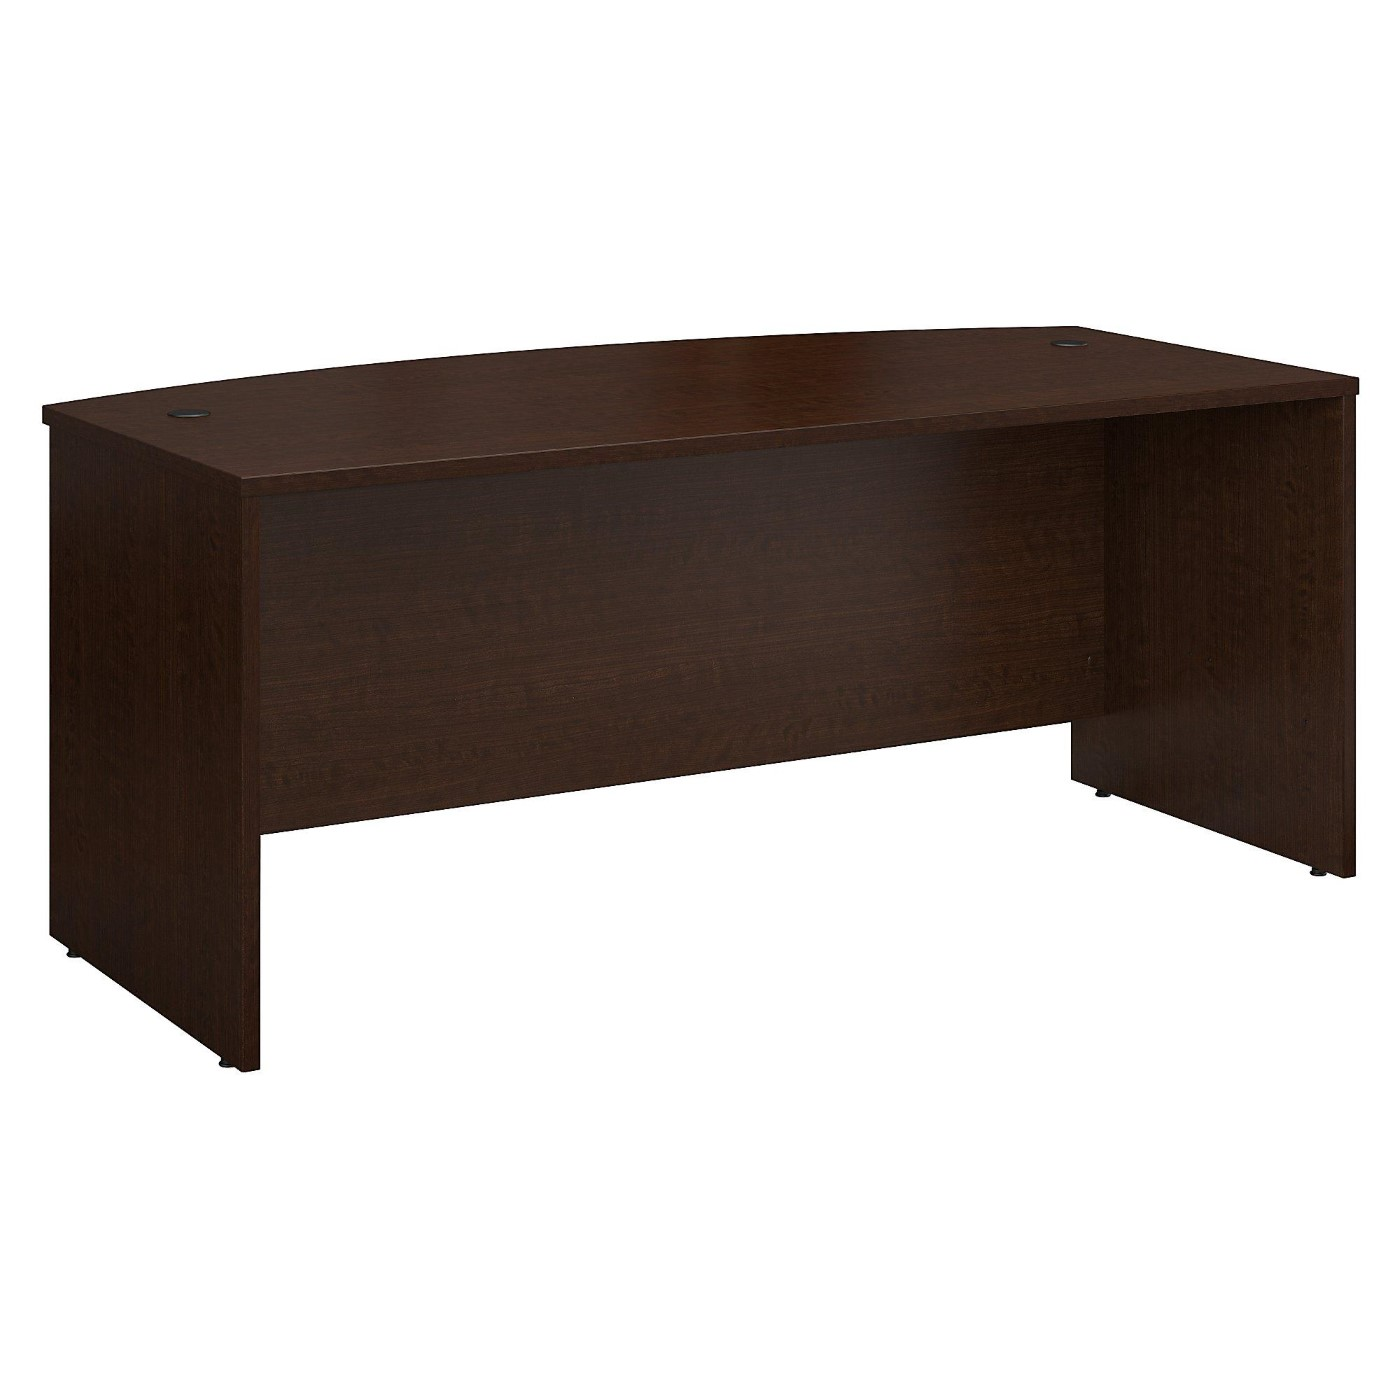 BUSH BUSINESS FURNITURE SERIES C 72W X 36D BOW FRONT DESK. FREE SHIPPING</font></b></font>&#x1F384<font color=red><b>ERGONOMICHOME HOLIDAY SALE - ENDS DEC. 17, 2019</b></font>&#x1F384